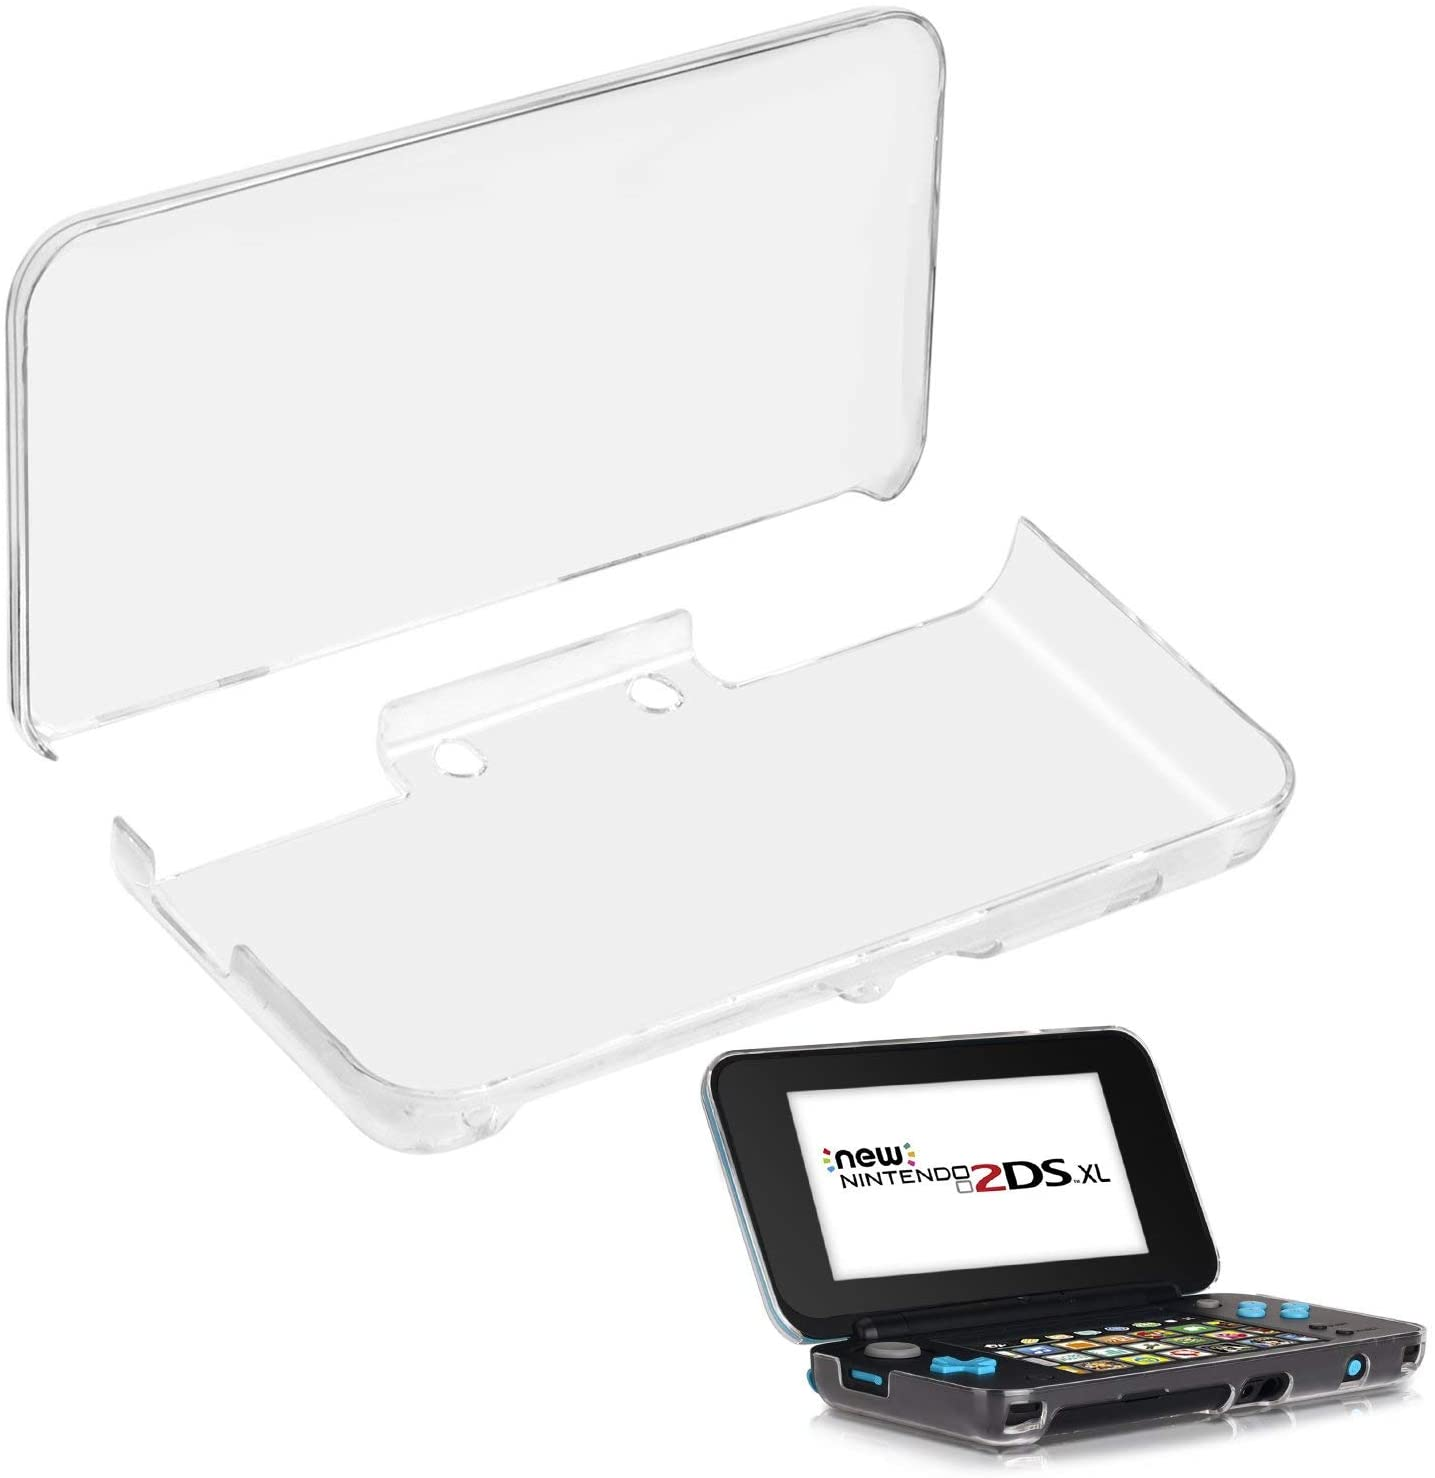 Nintendo 2DS XL Case, Protective Case for New Nintendo 2DS XL, Cover Shell skin For Nintendo 2DS XL Handheld Games Console, For Boys 1 Sets (Transparent)